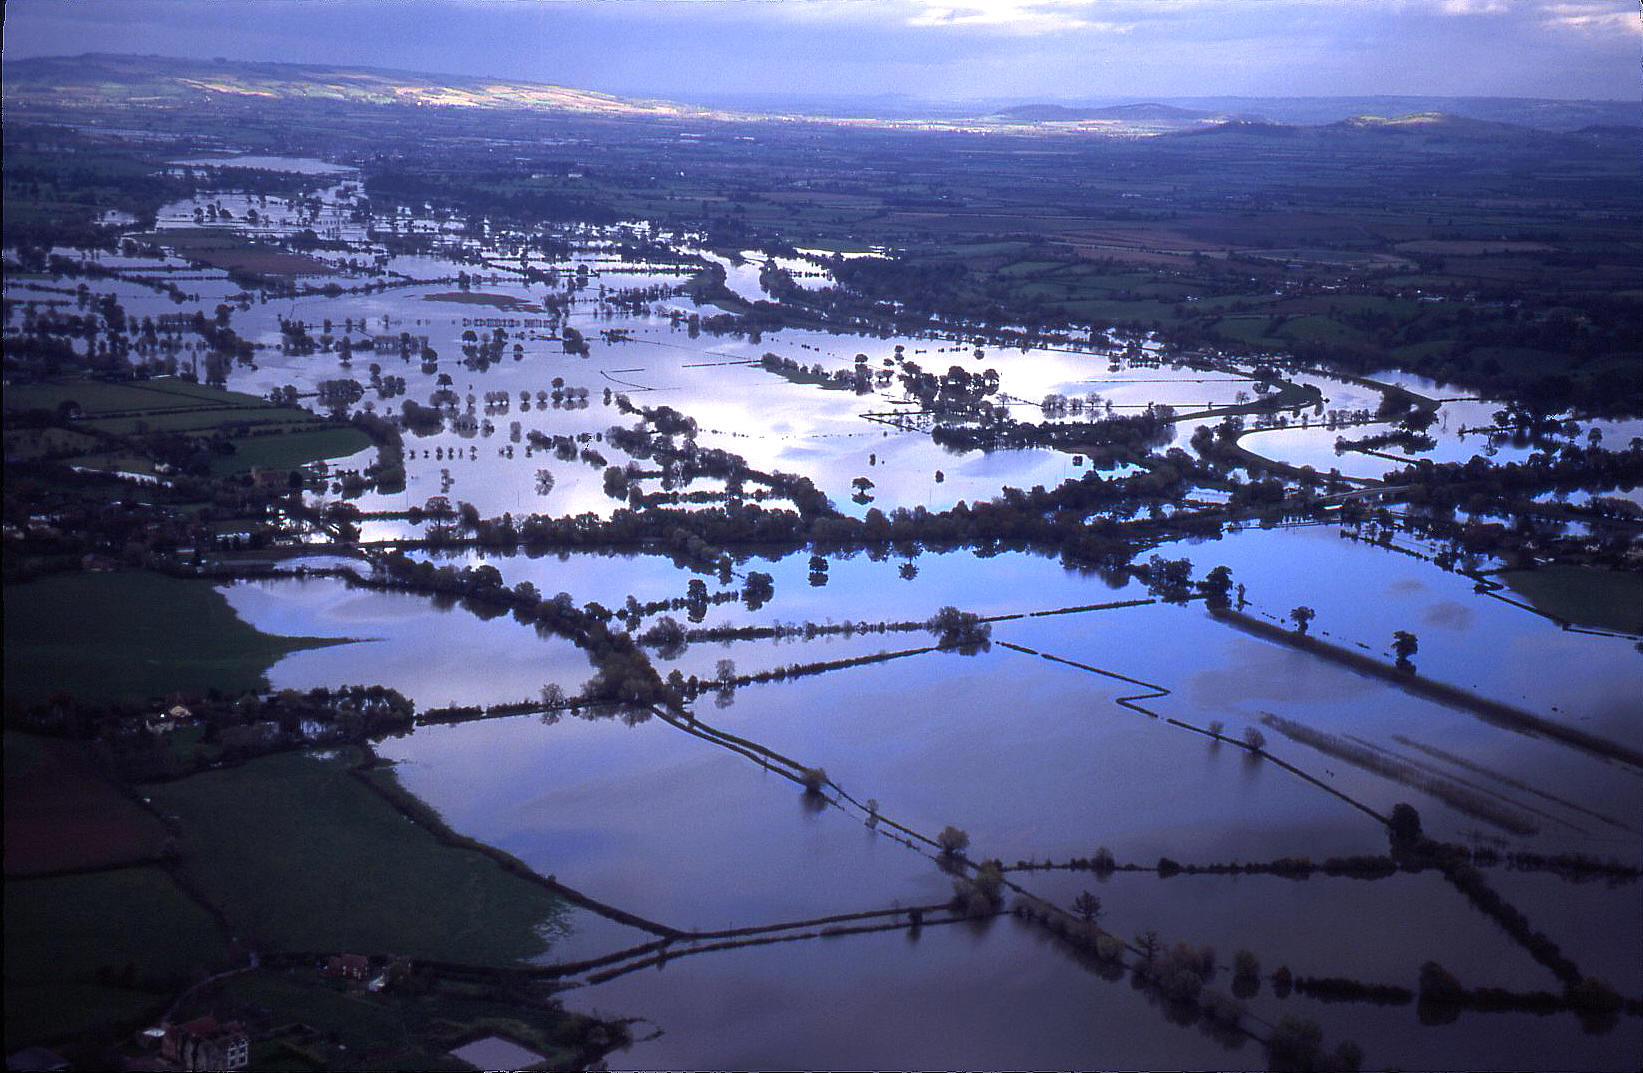 Flooding in the Severn valley, see note 6